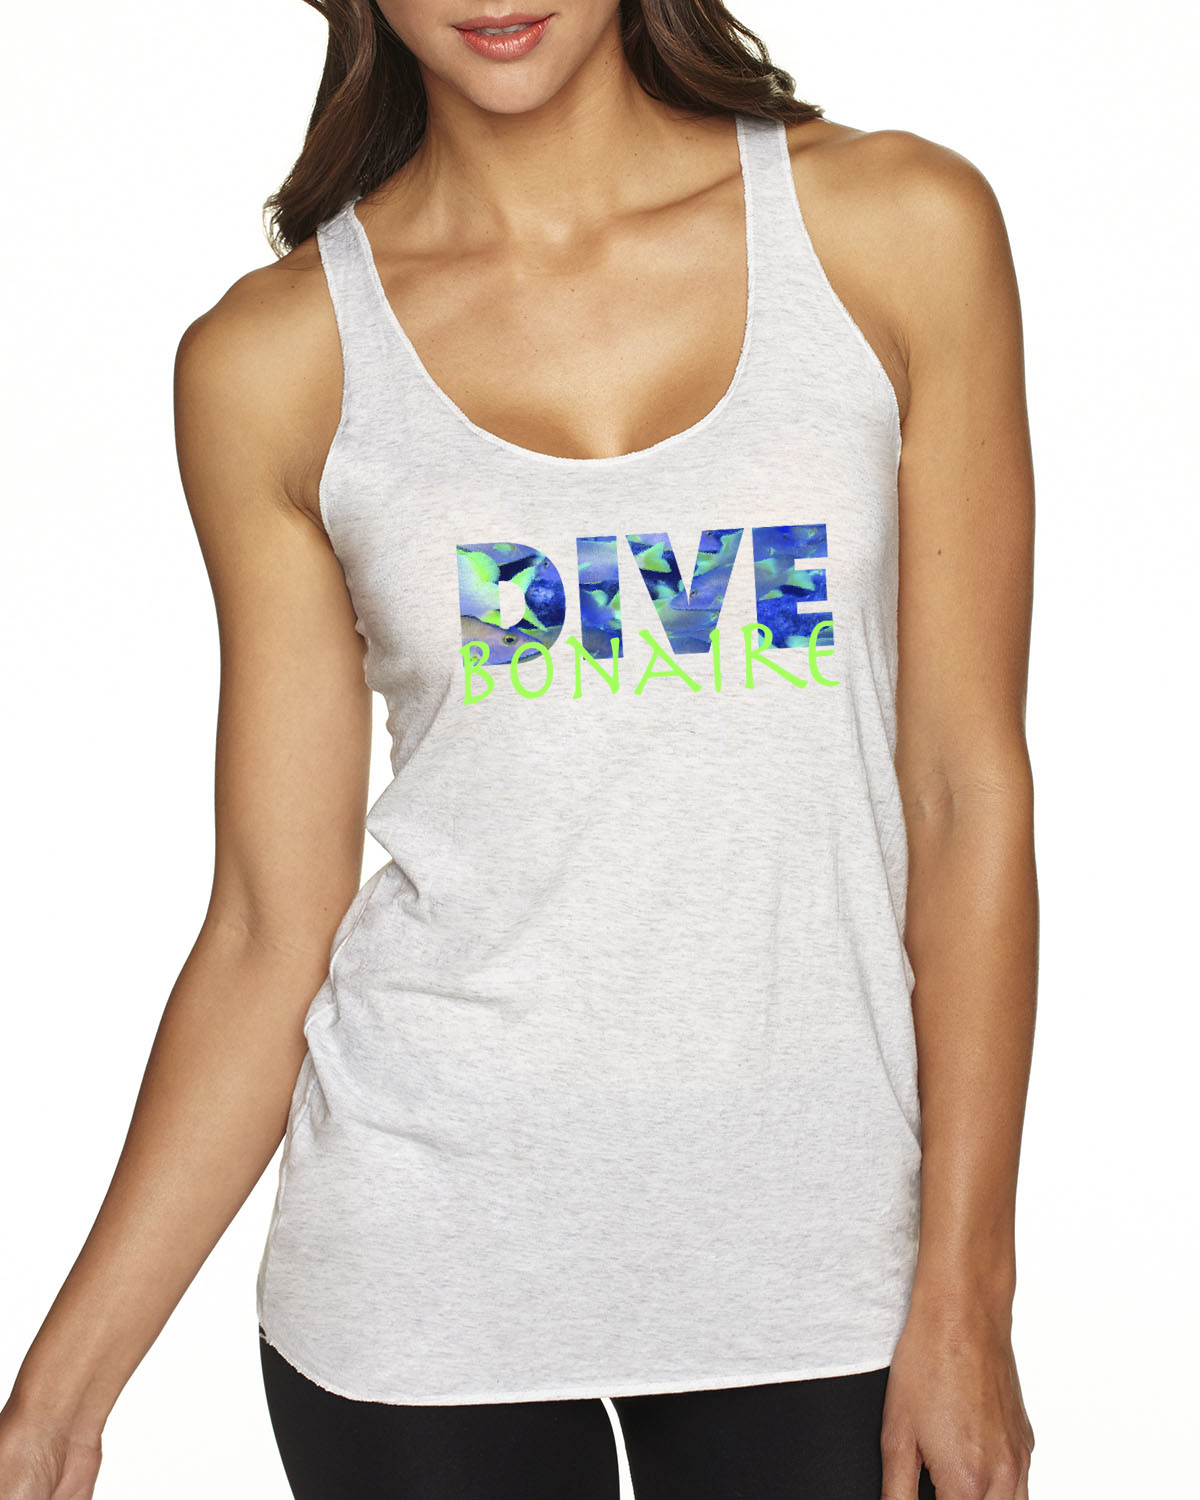 Racer-Back DIVE Bonaire Tank Top (Heather White)